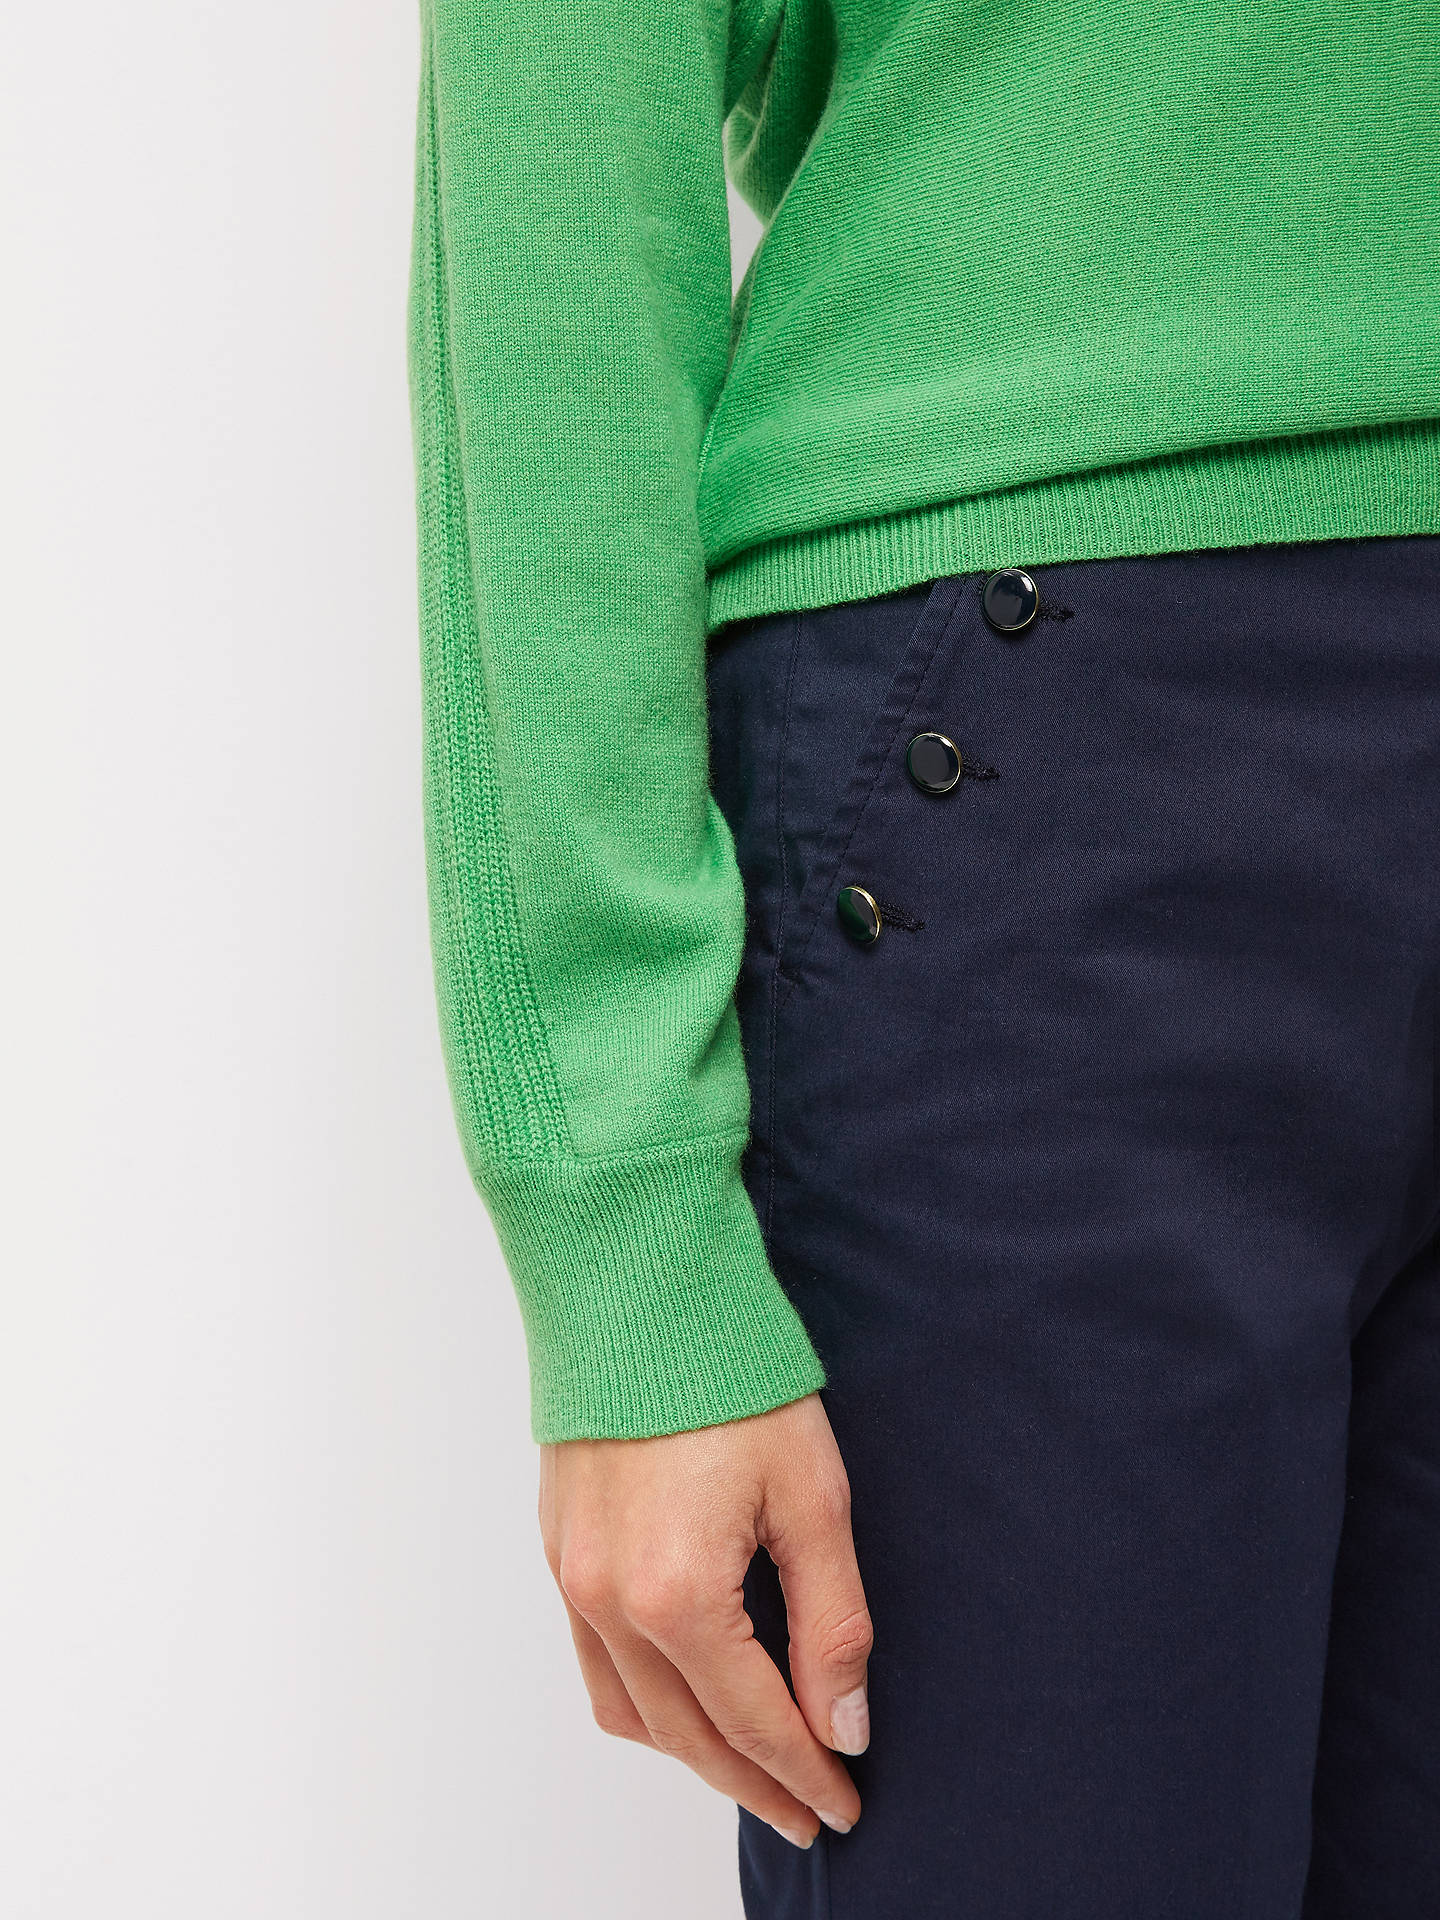 BuyJaeger Enamel Button Chinos, Navy, 6 Online at johnlewis.com